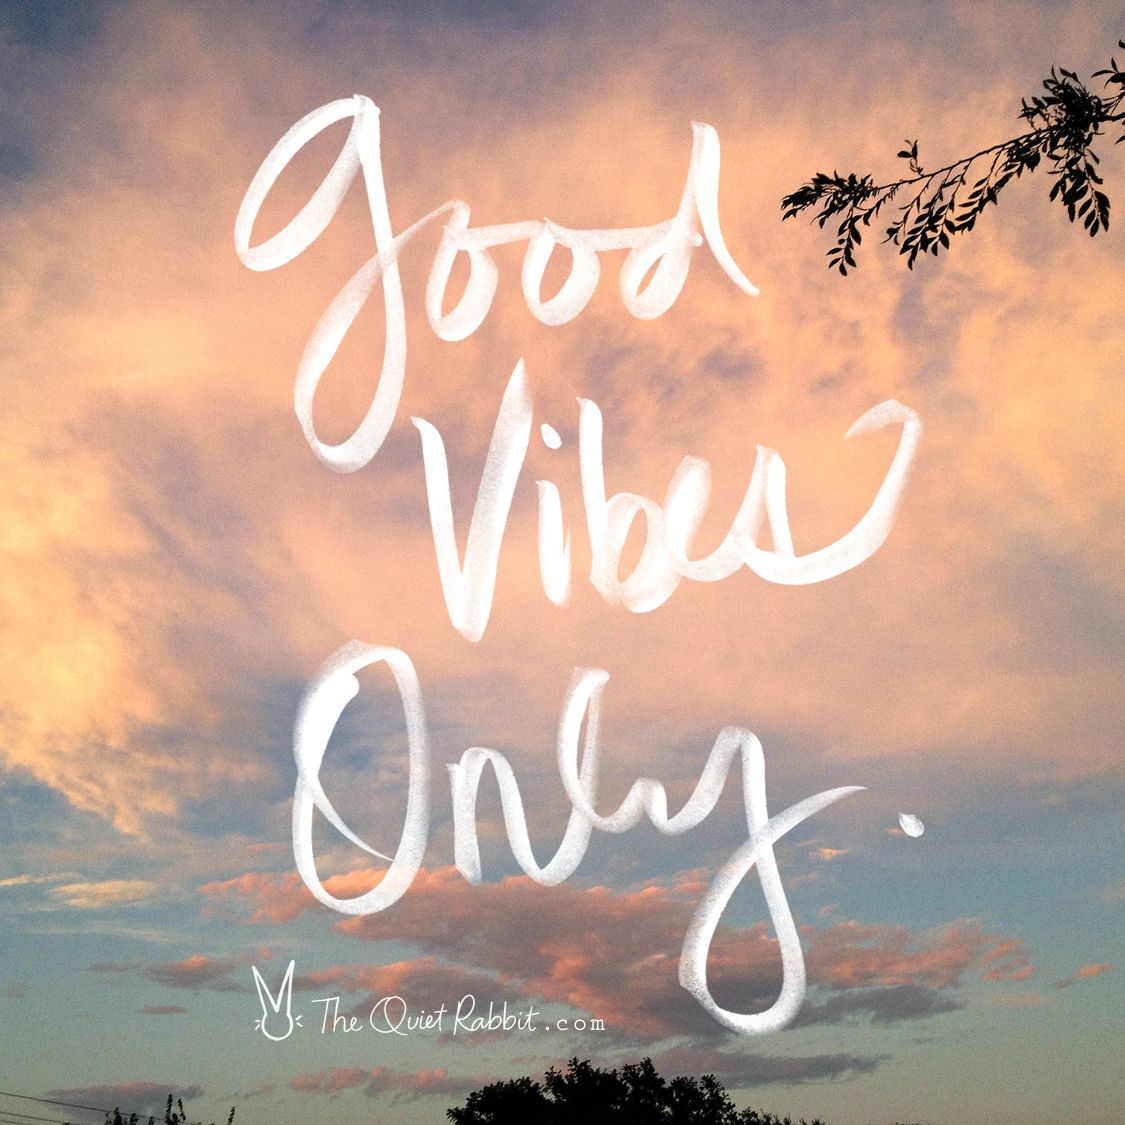 Good Vibes Quotes: Quotes, Words Quotes